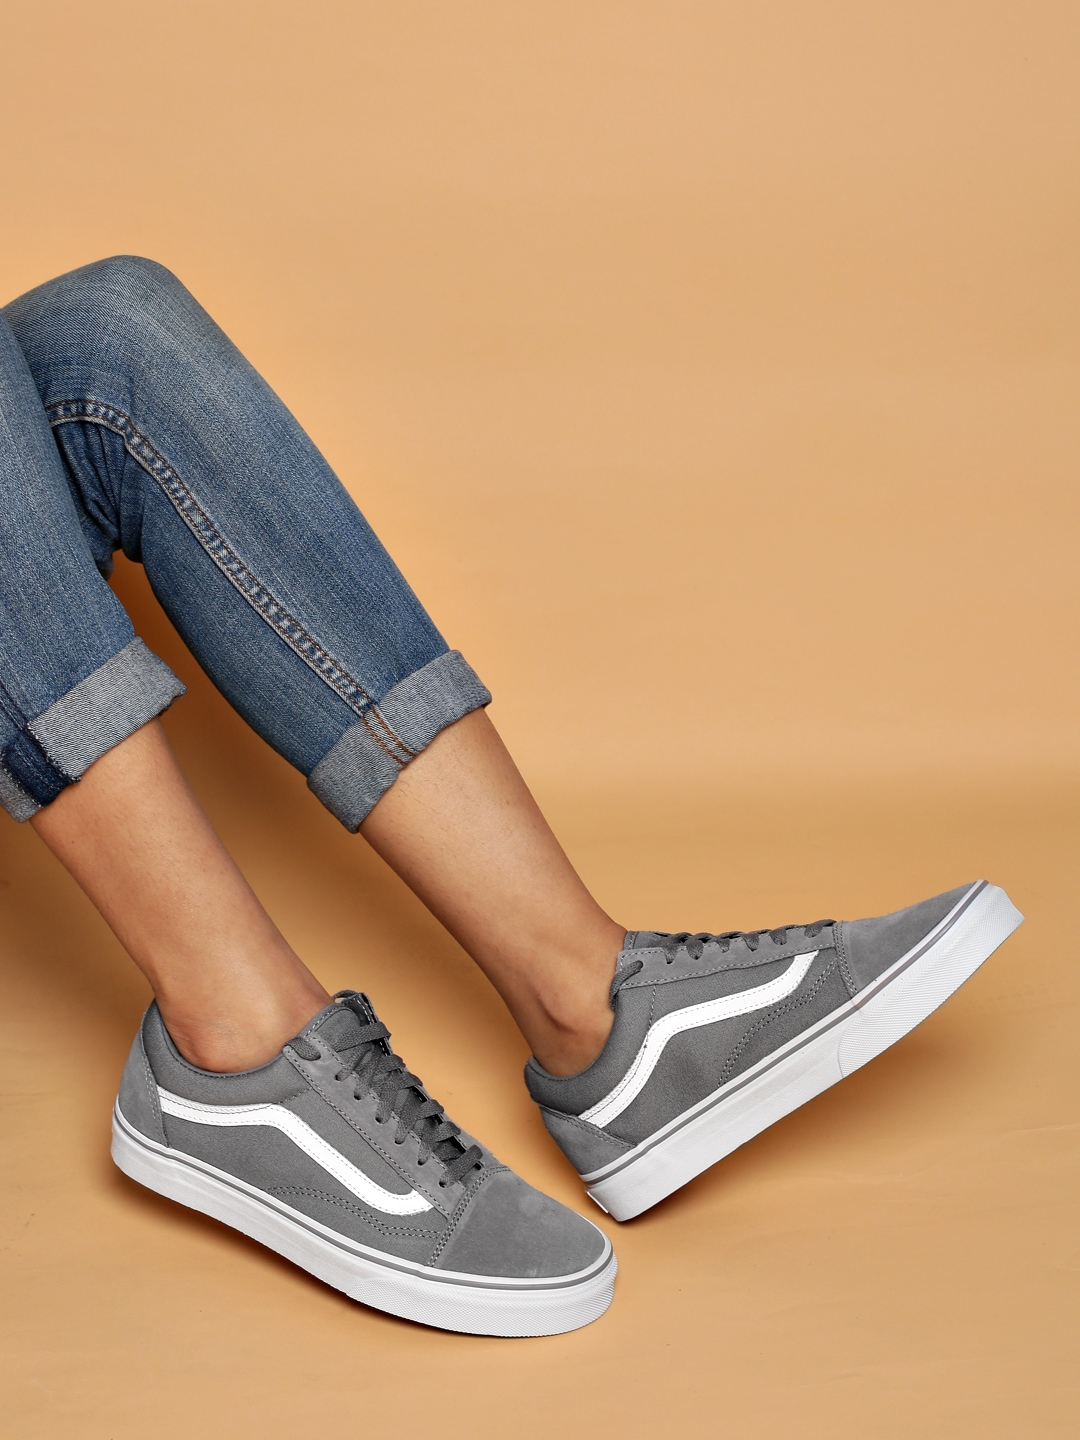 Kitchen Canisters Glass Vans Women Grey Solid Old Skool Regular Sneakers Price